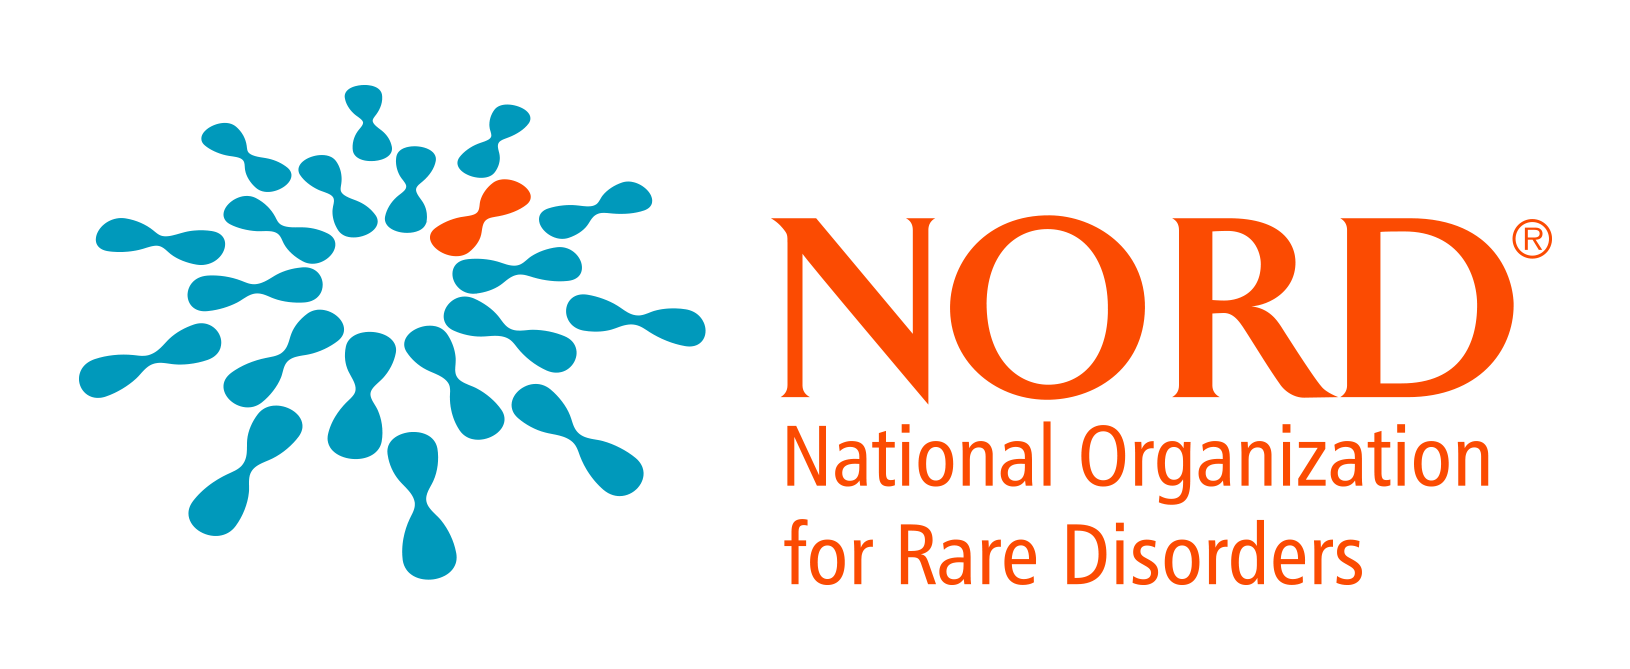 National Organization for Rare Disorders, NORD, is an organization dedicated to providing resources about rare diseases.